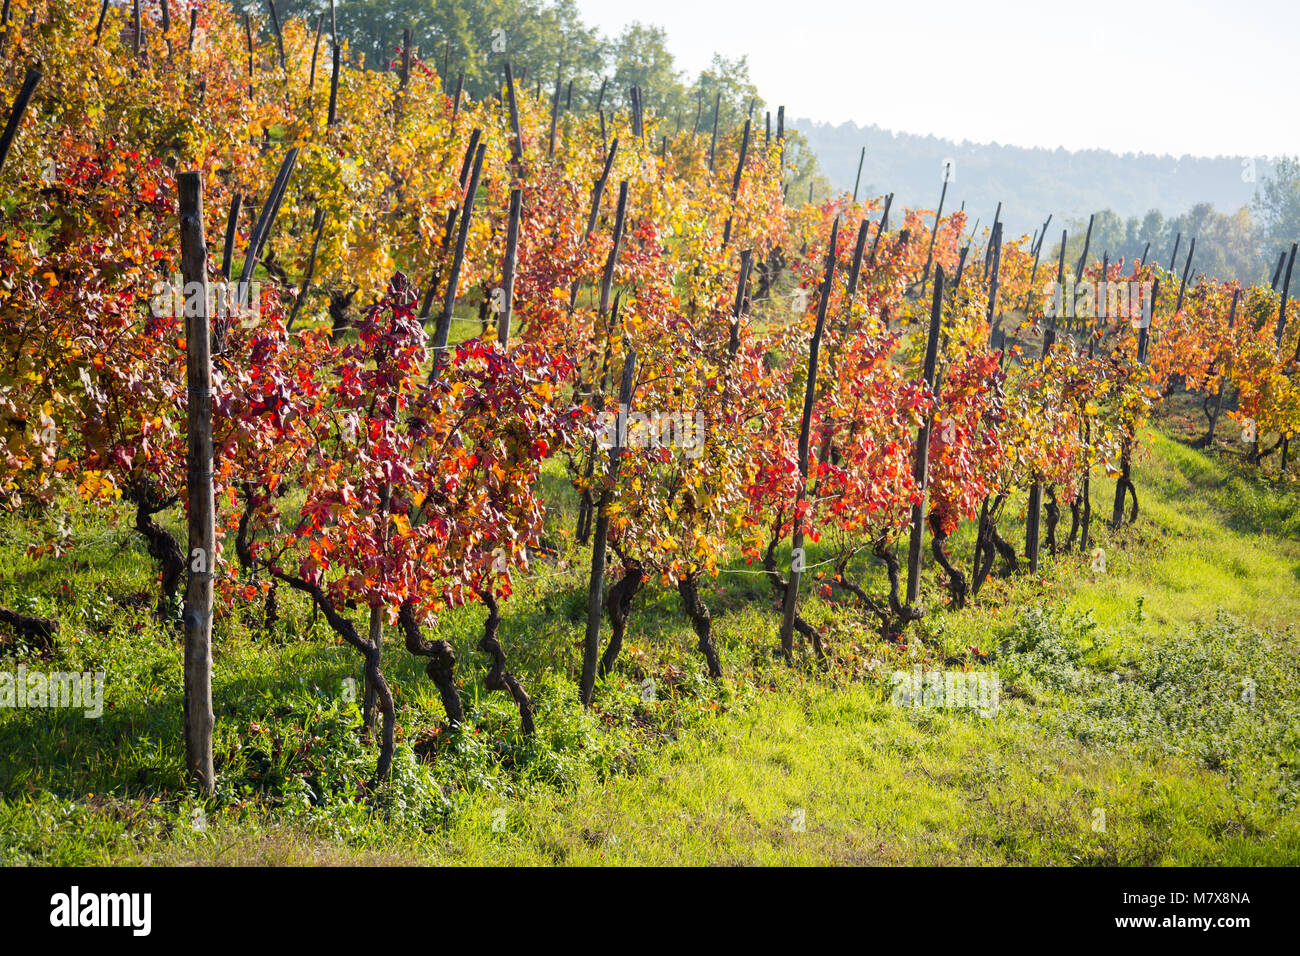 Colorful trees of grapes in autumntime, Italy - Stock Image